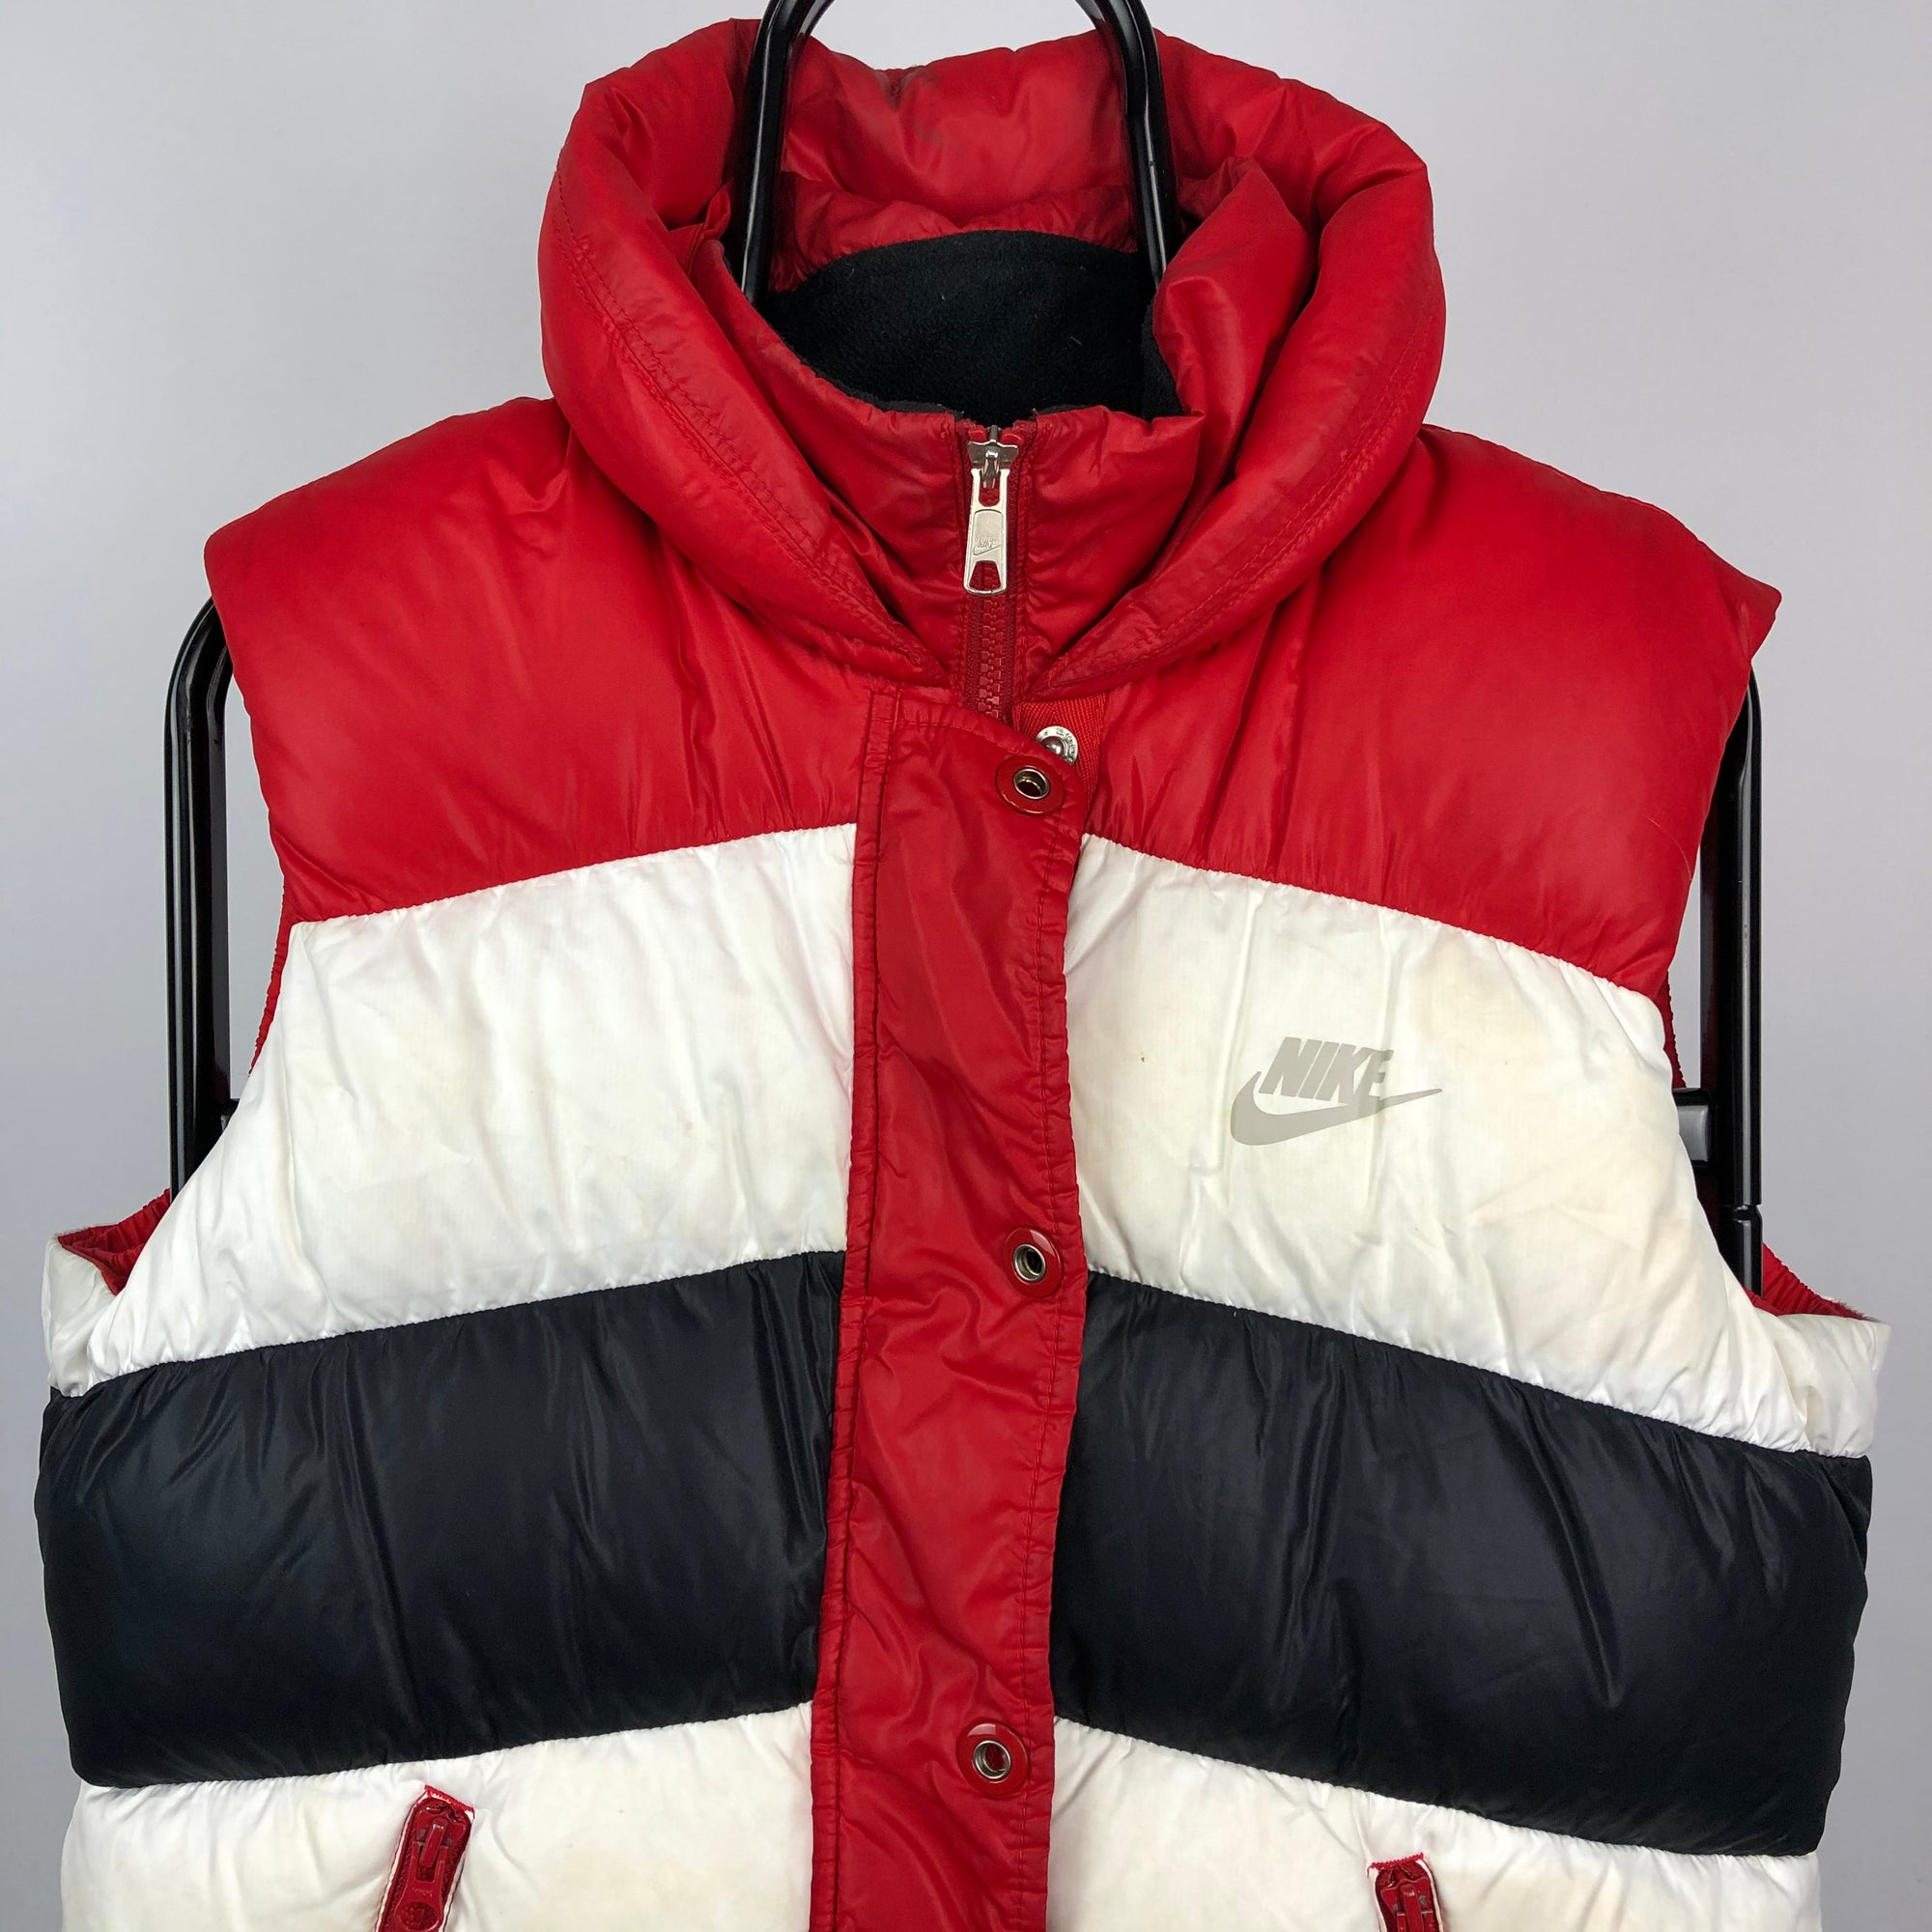 Vintage Nike Gilet in Red/Navy/White - Men's Small/Women's Medium